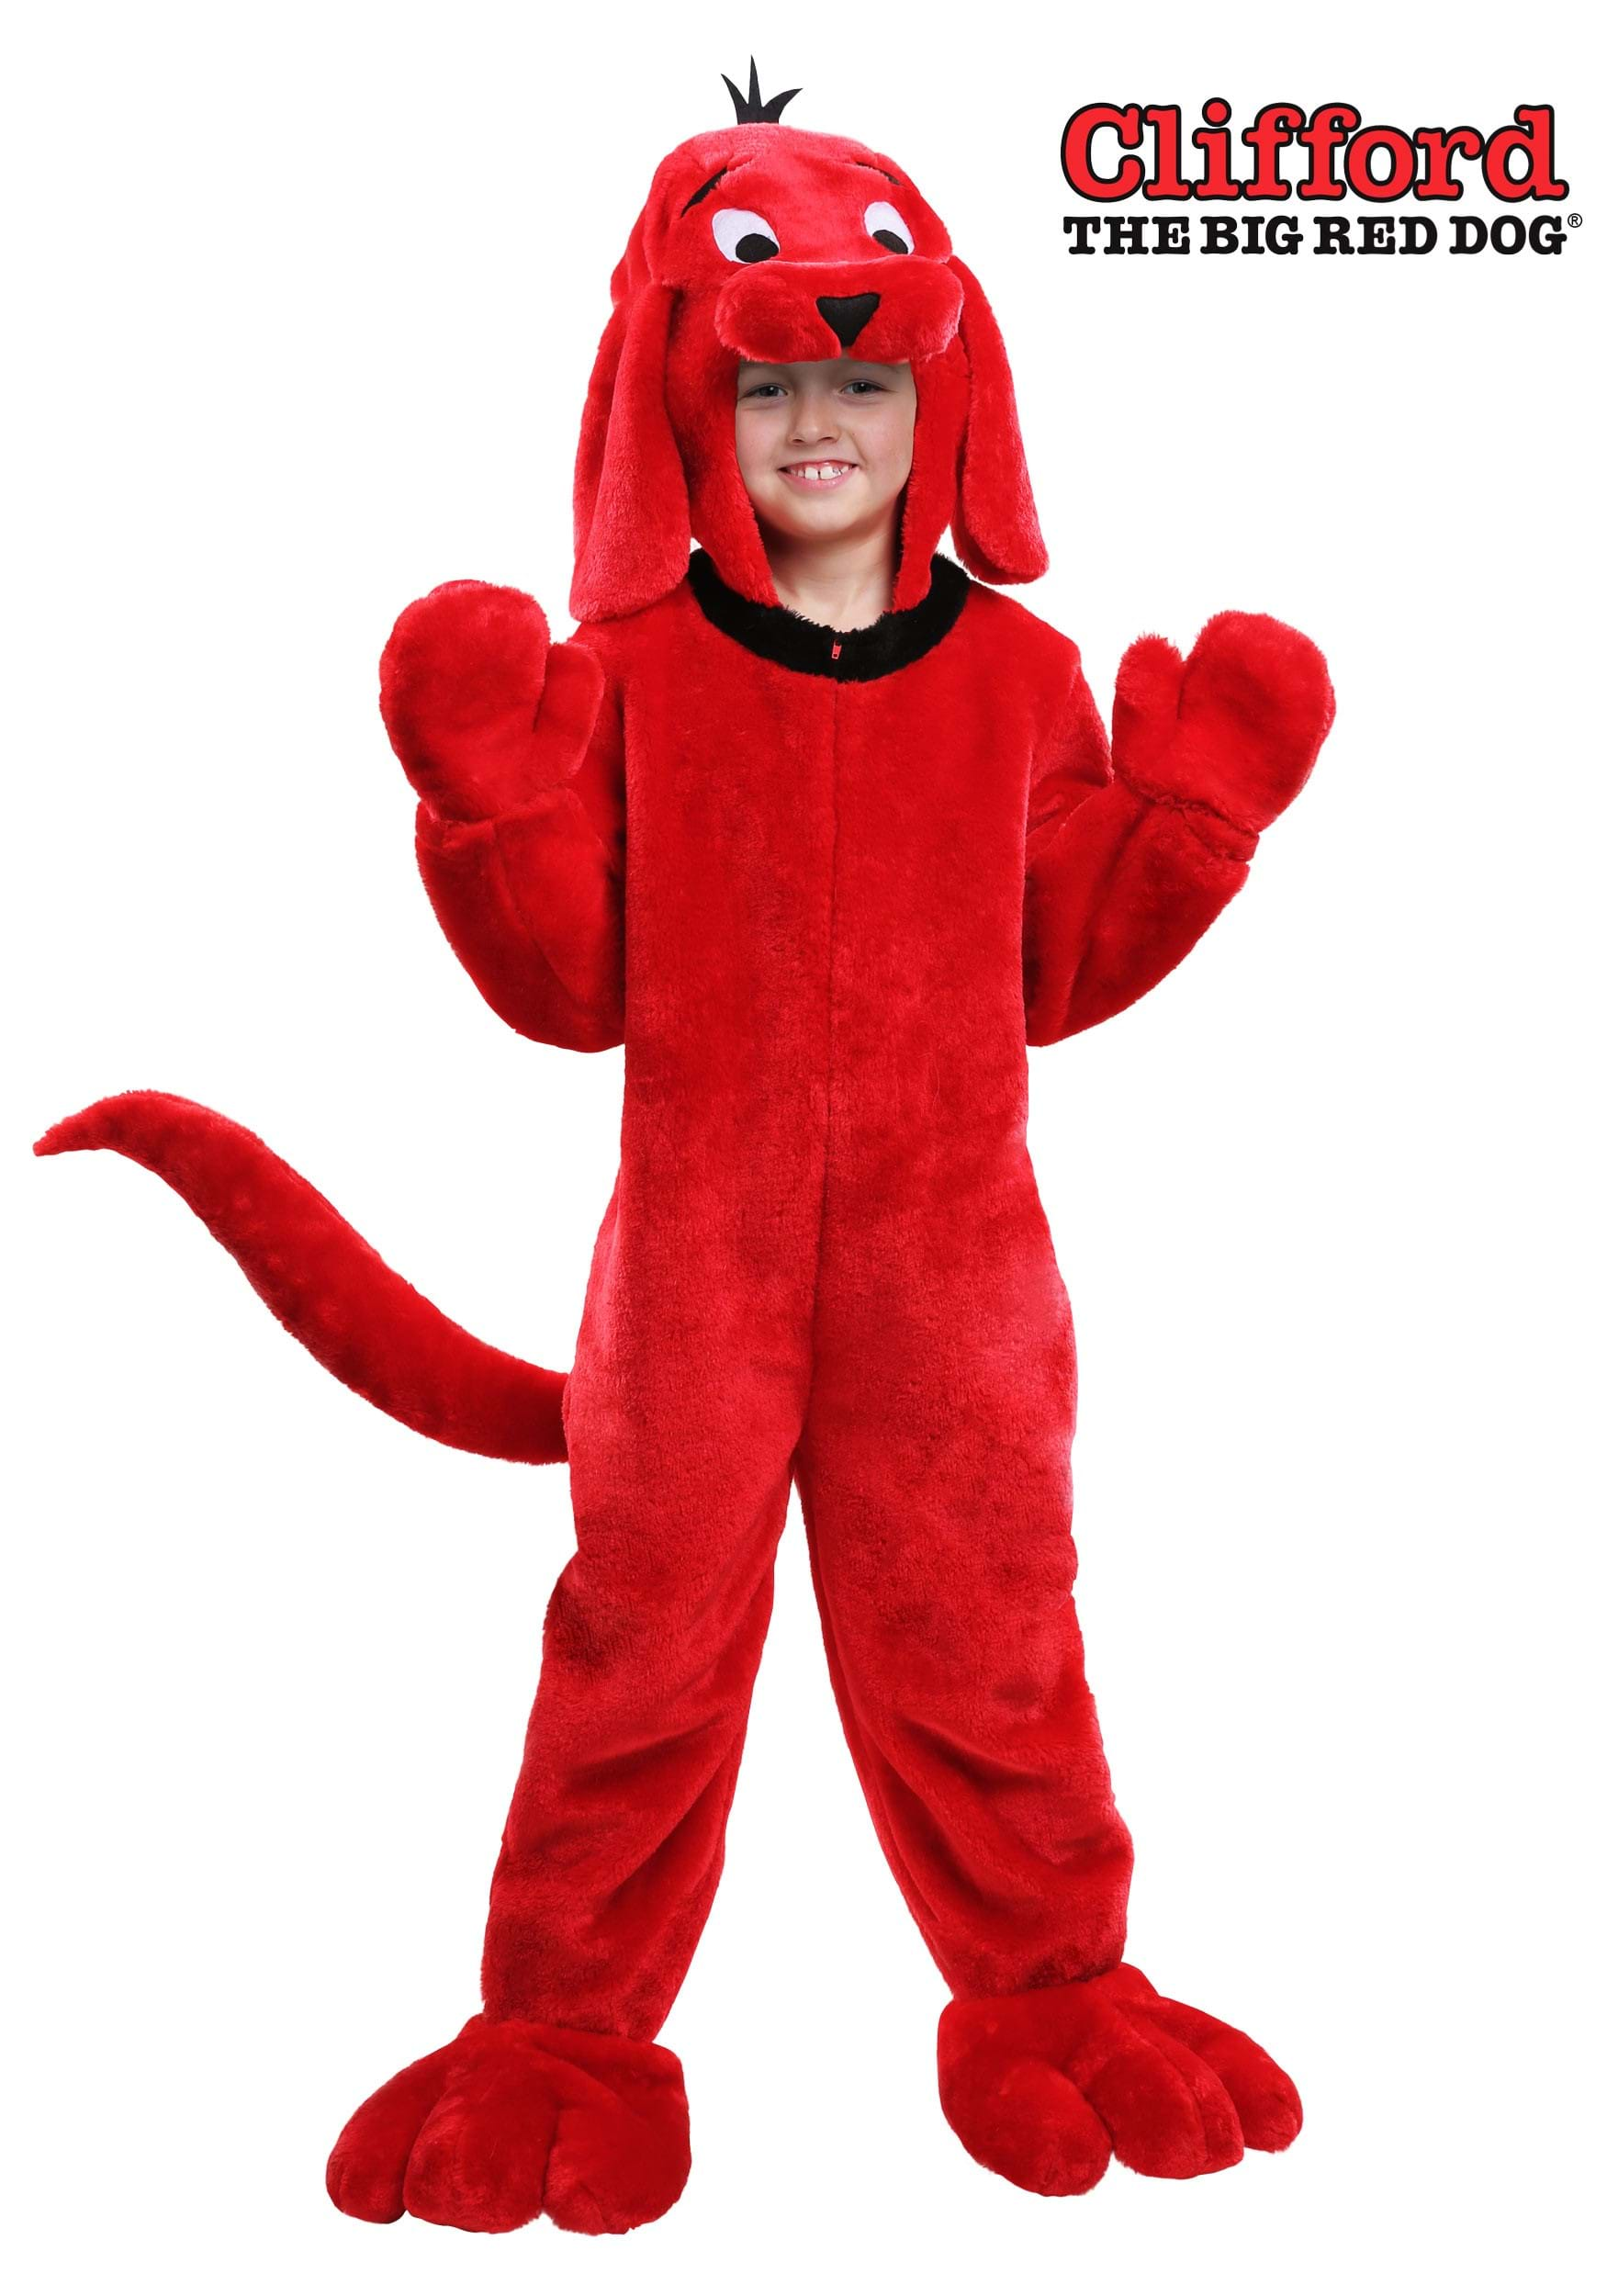 692bfd929f6 Clifford the Big Red Dog Costume for Children